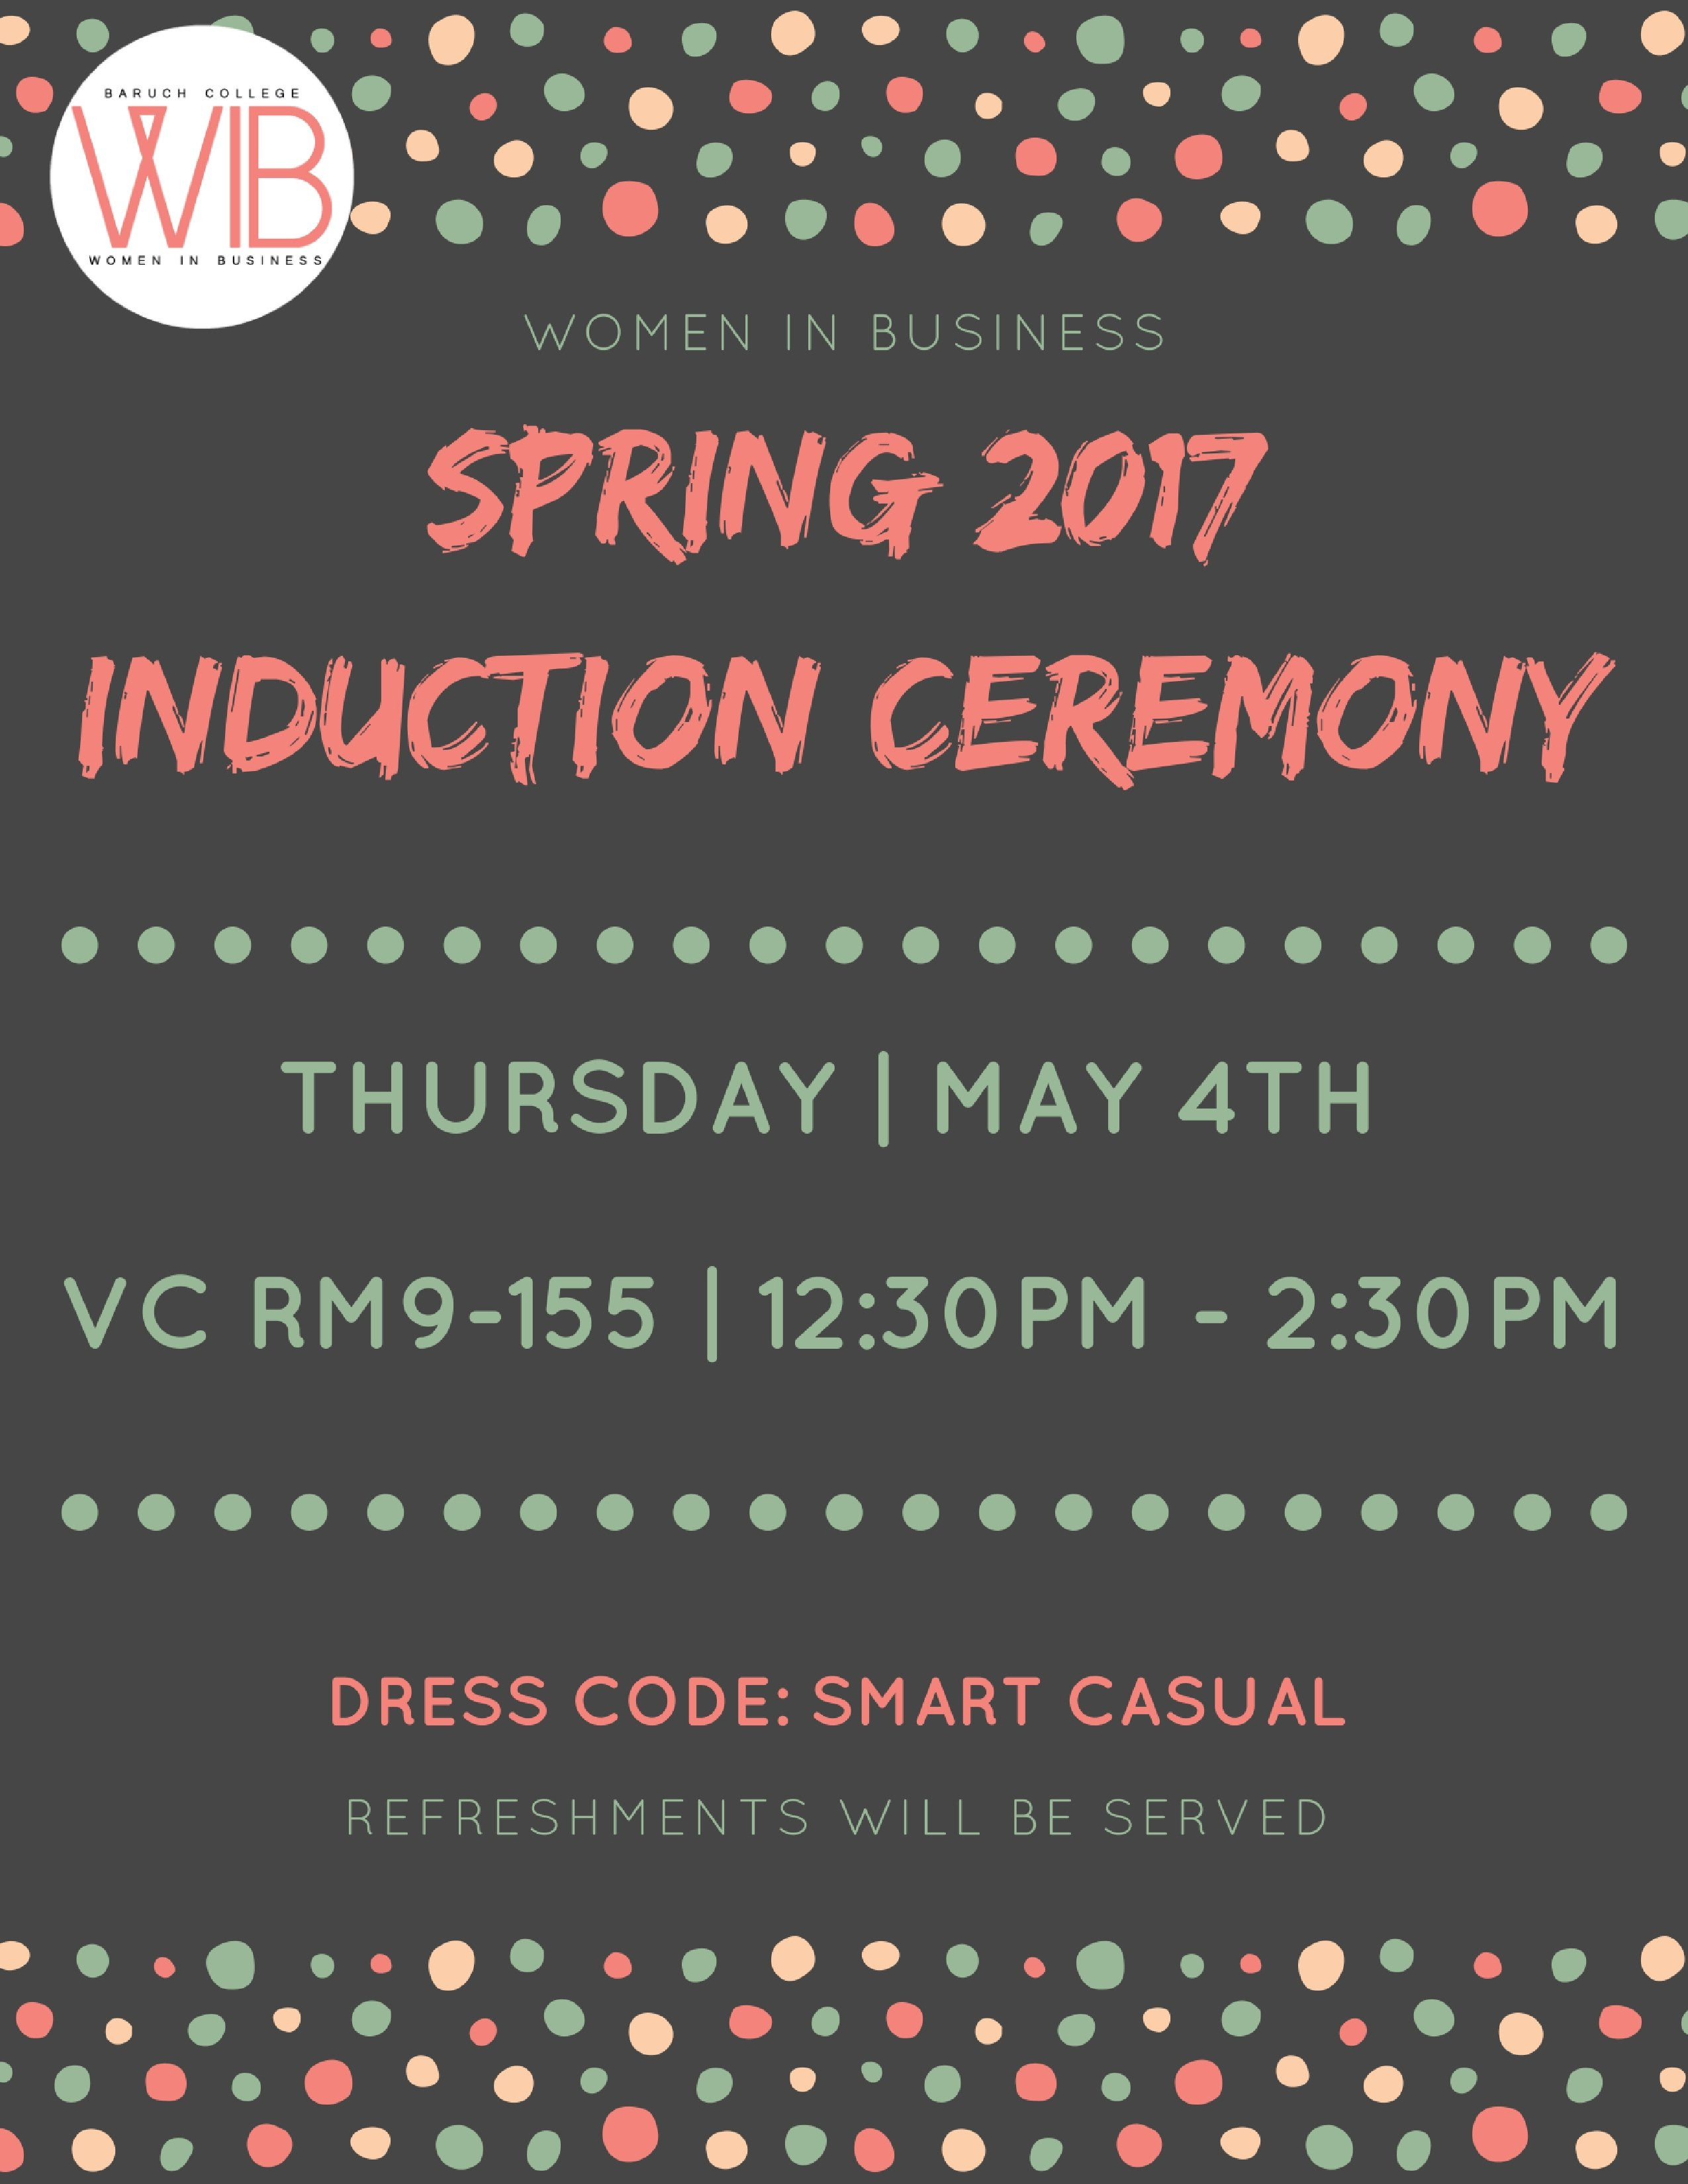 Spring Induction Ceremony